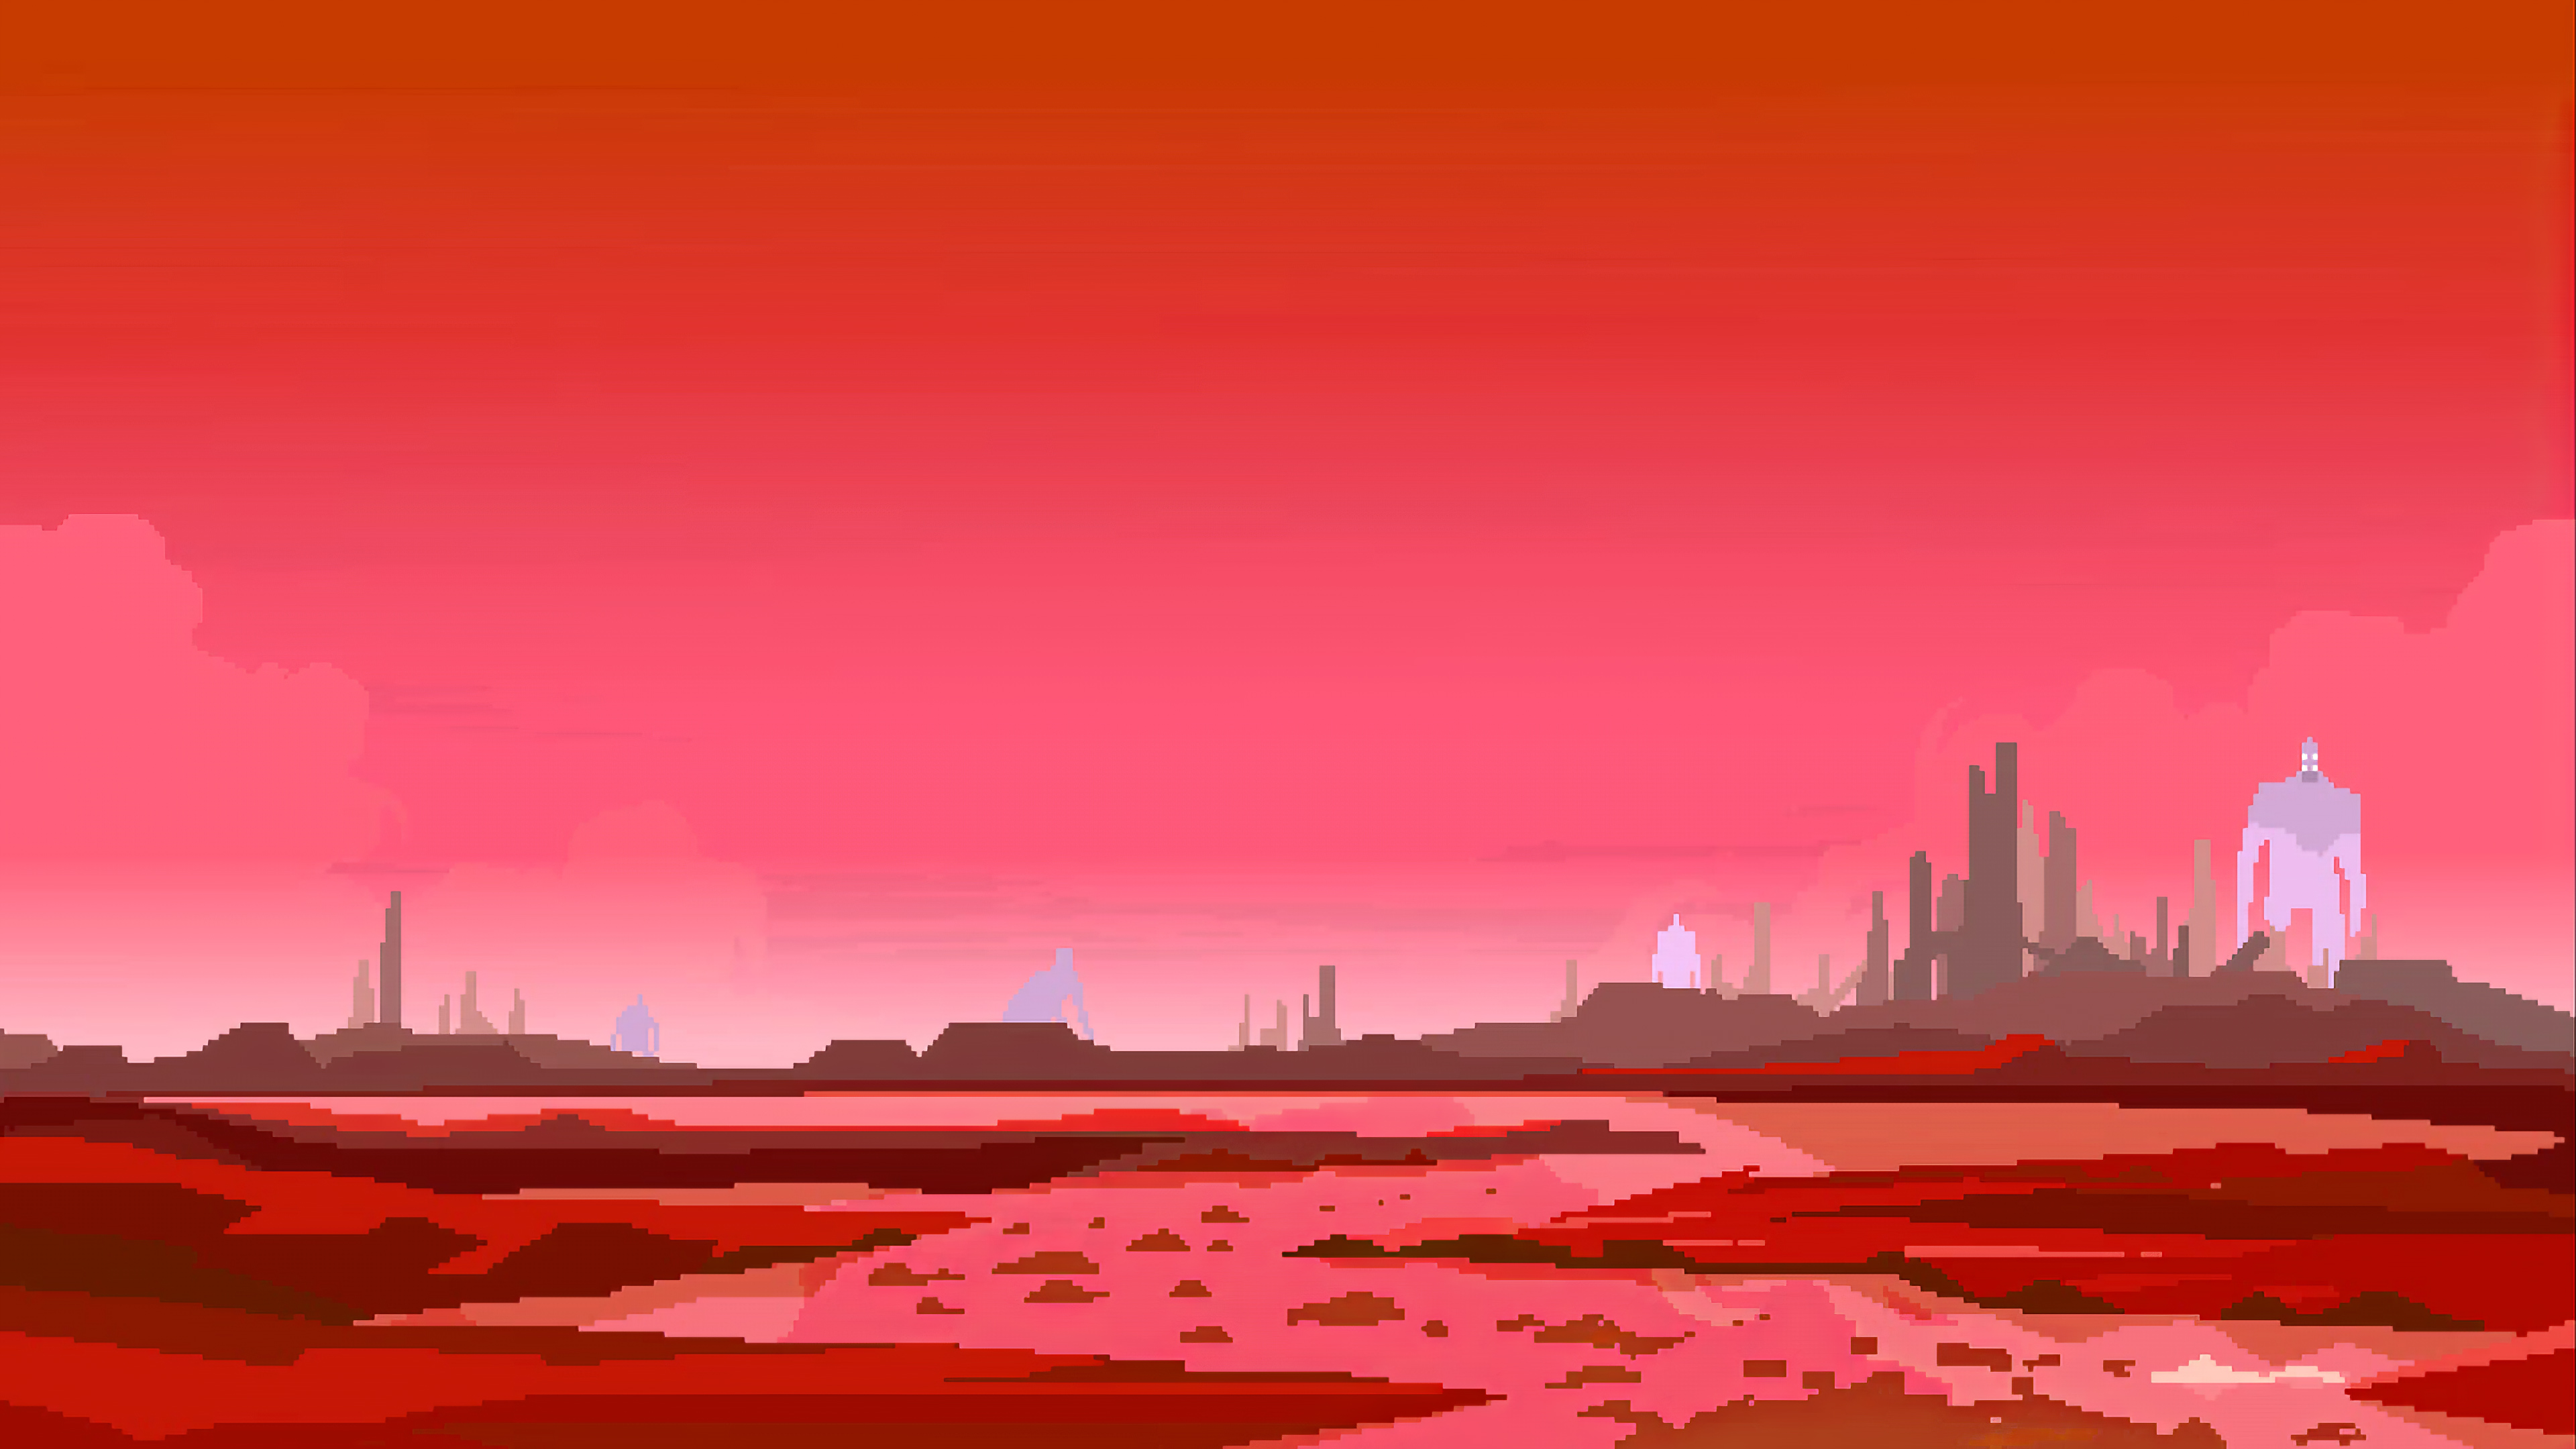 Wallpaper 4k Hyper Light Drifter 8bit